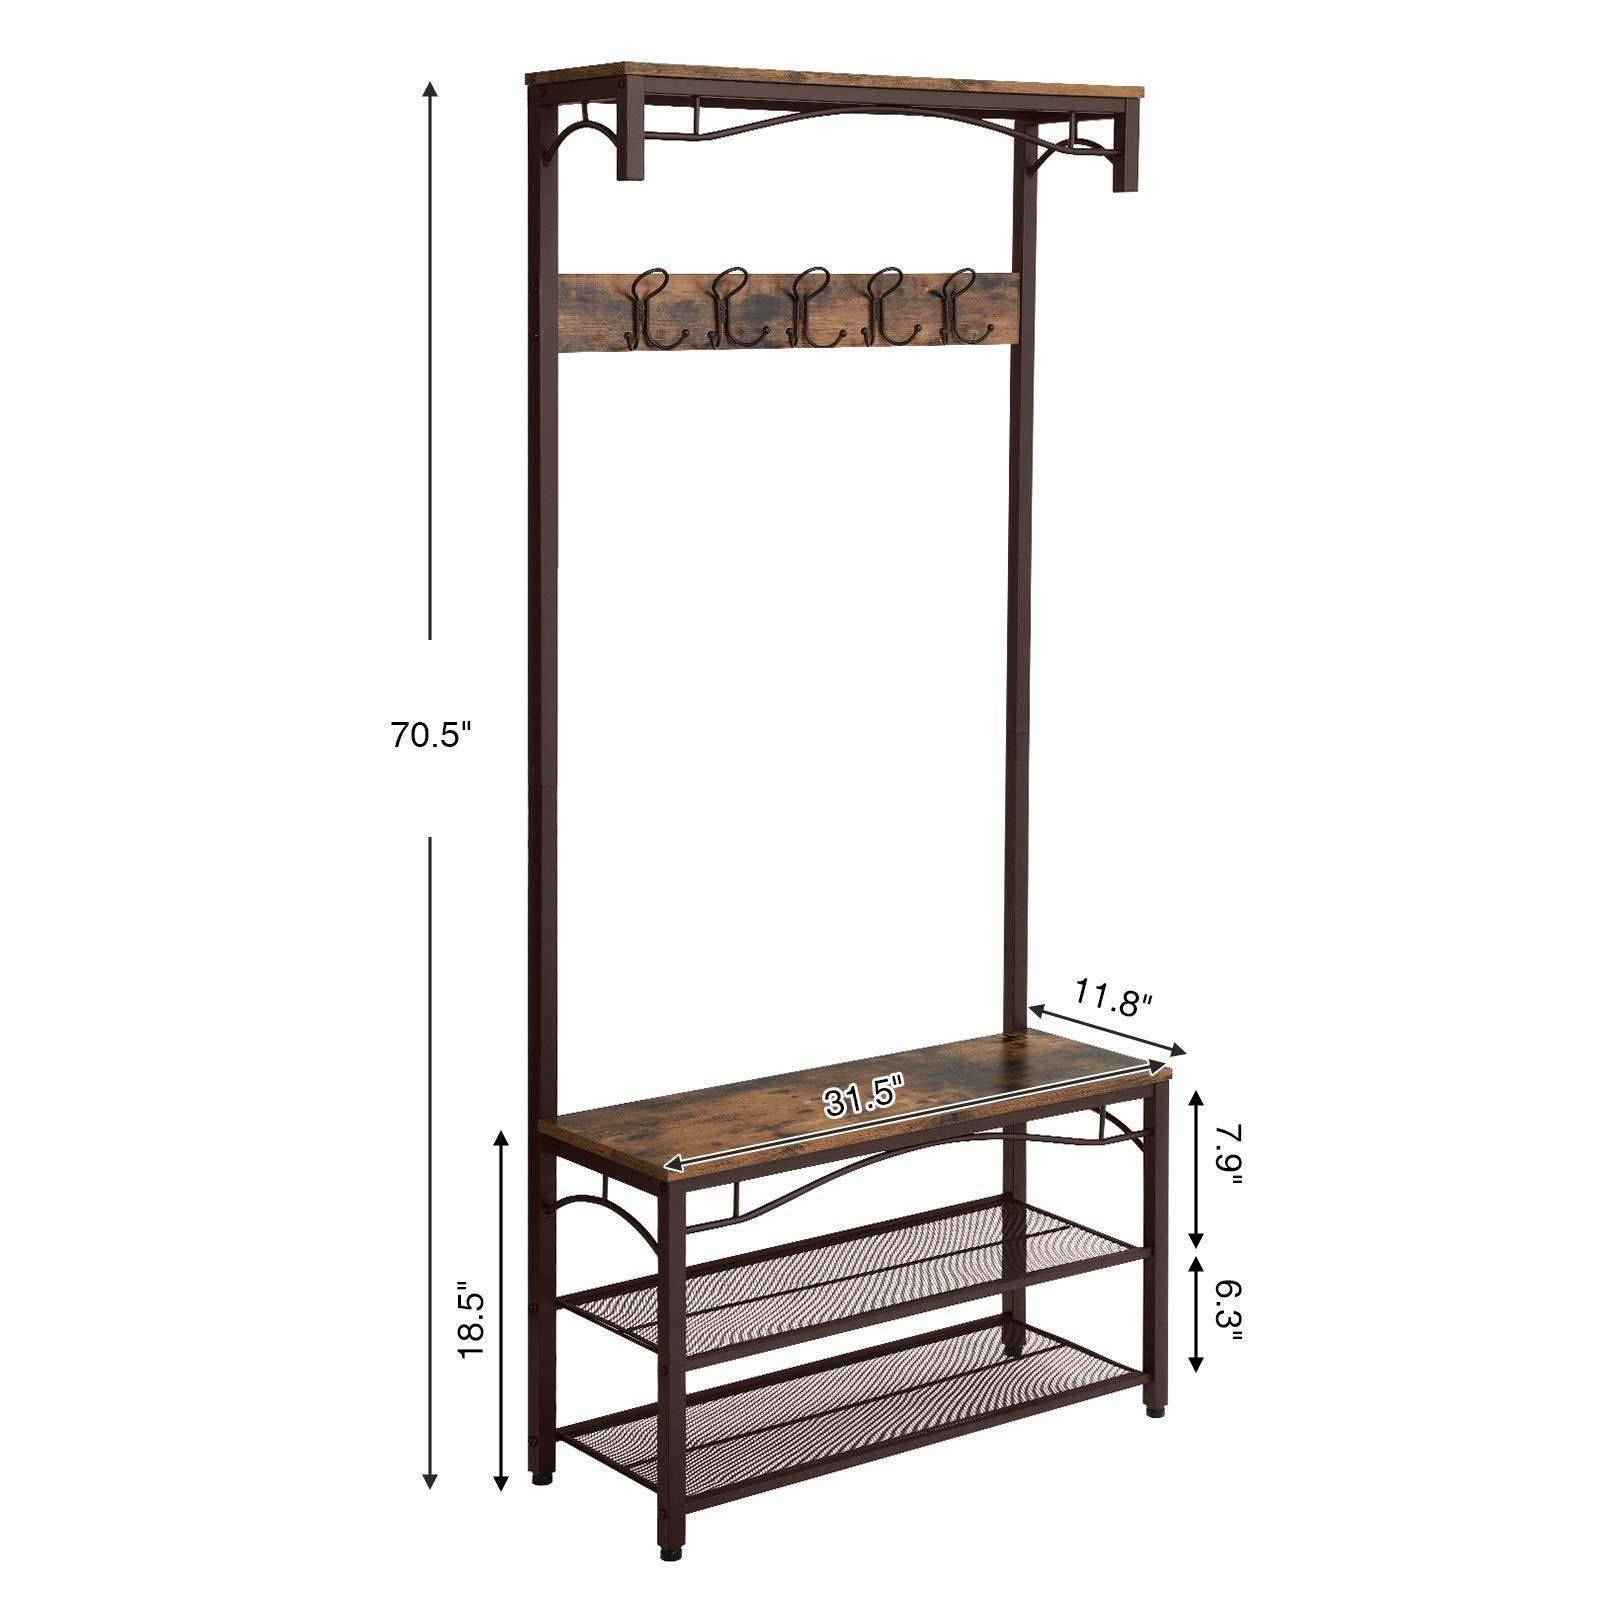 SONGMICS Vintage Coat Rack, 3-in-1 Hall Tree, Entryway Shoe Bench Coat Stand, Storage Shelves Accent Furniture Metal Frame Large Size UHSR45AX